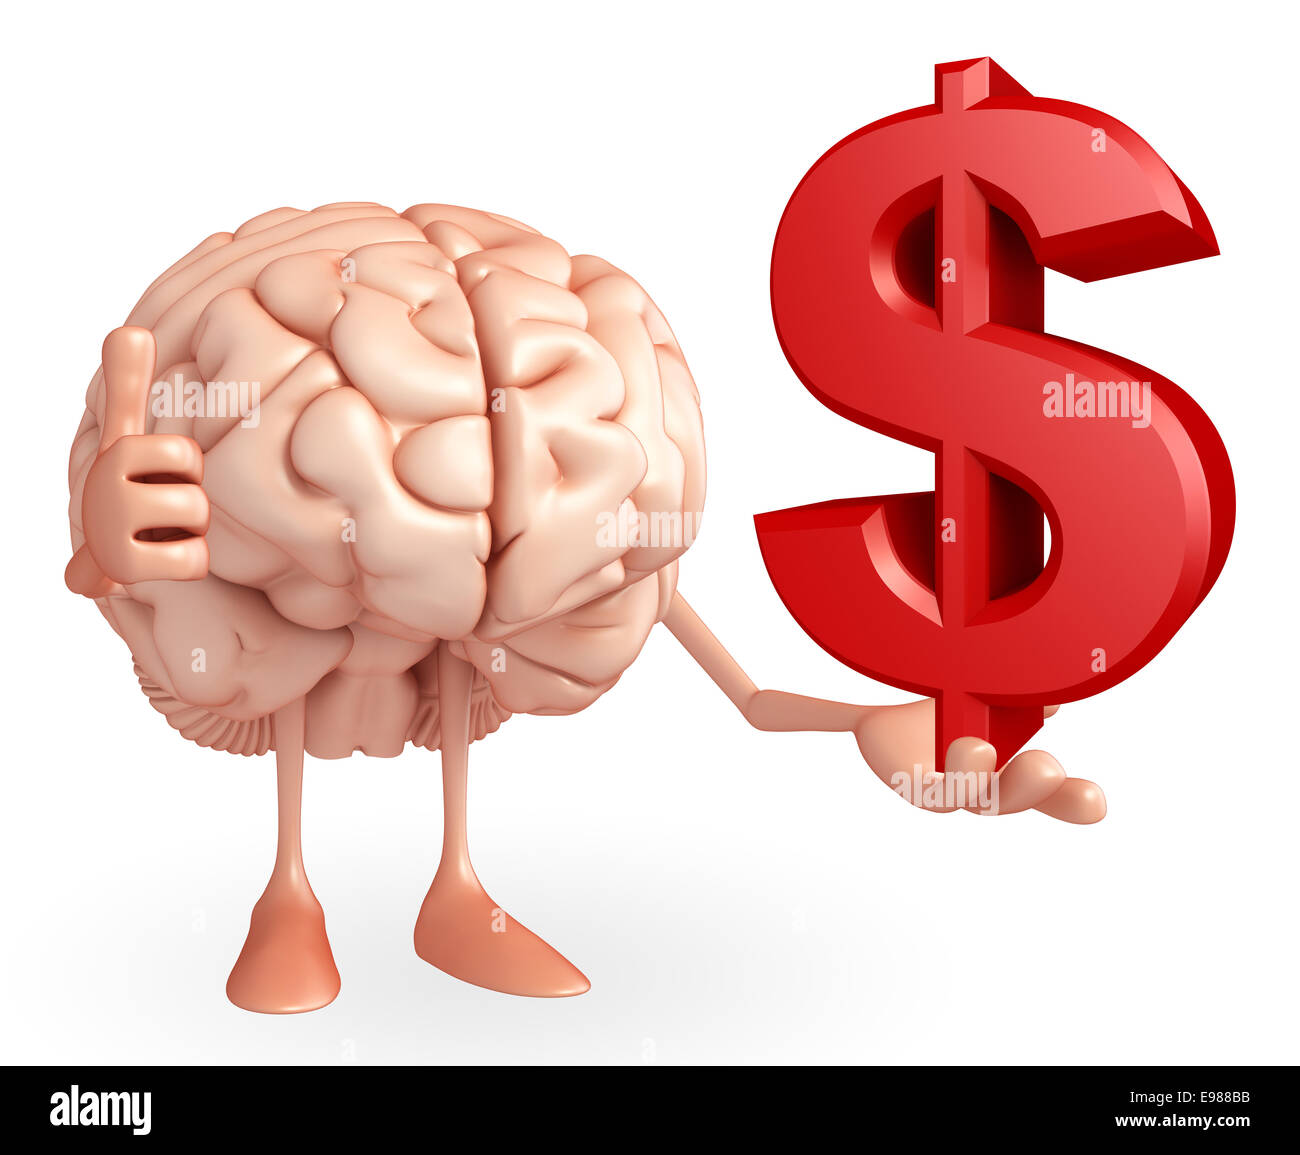 Cartoon character of brain with dollar sign Stock Photo